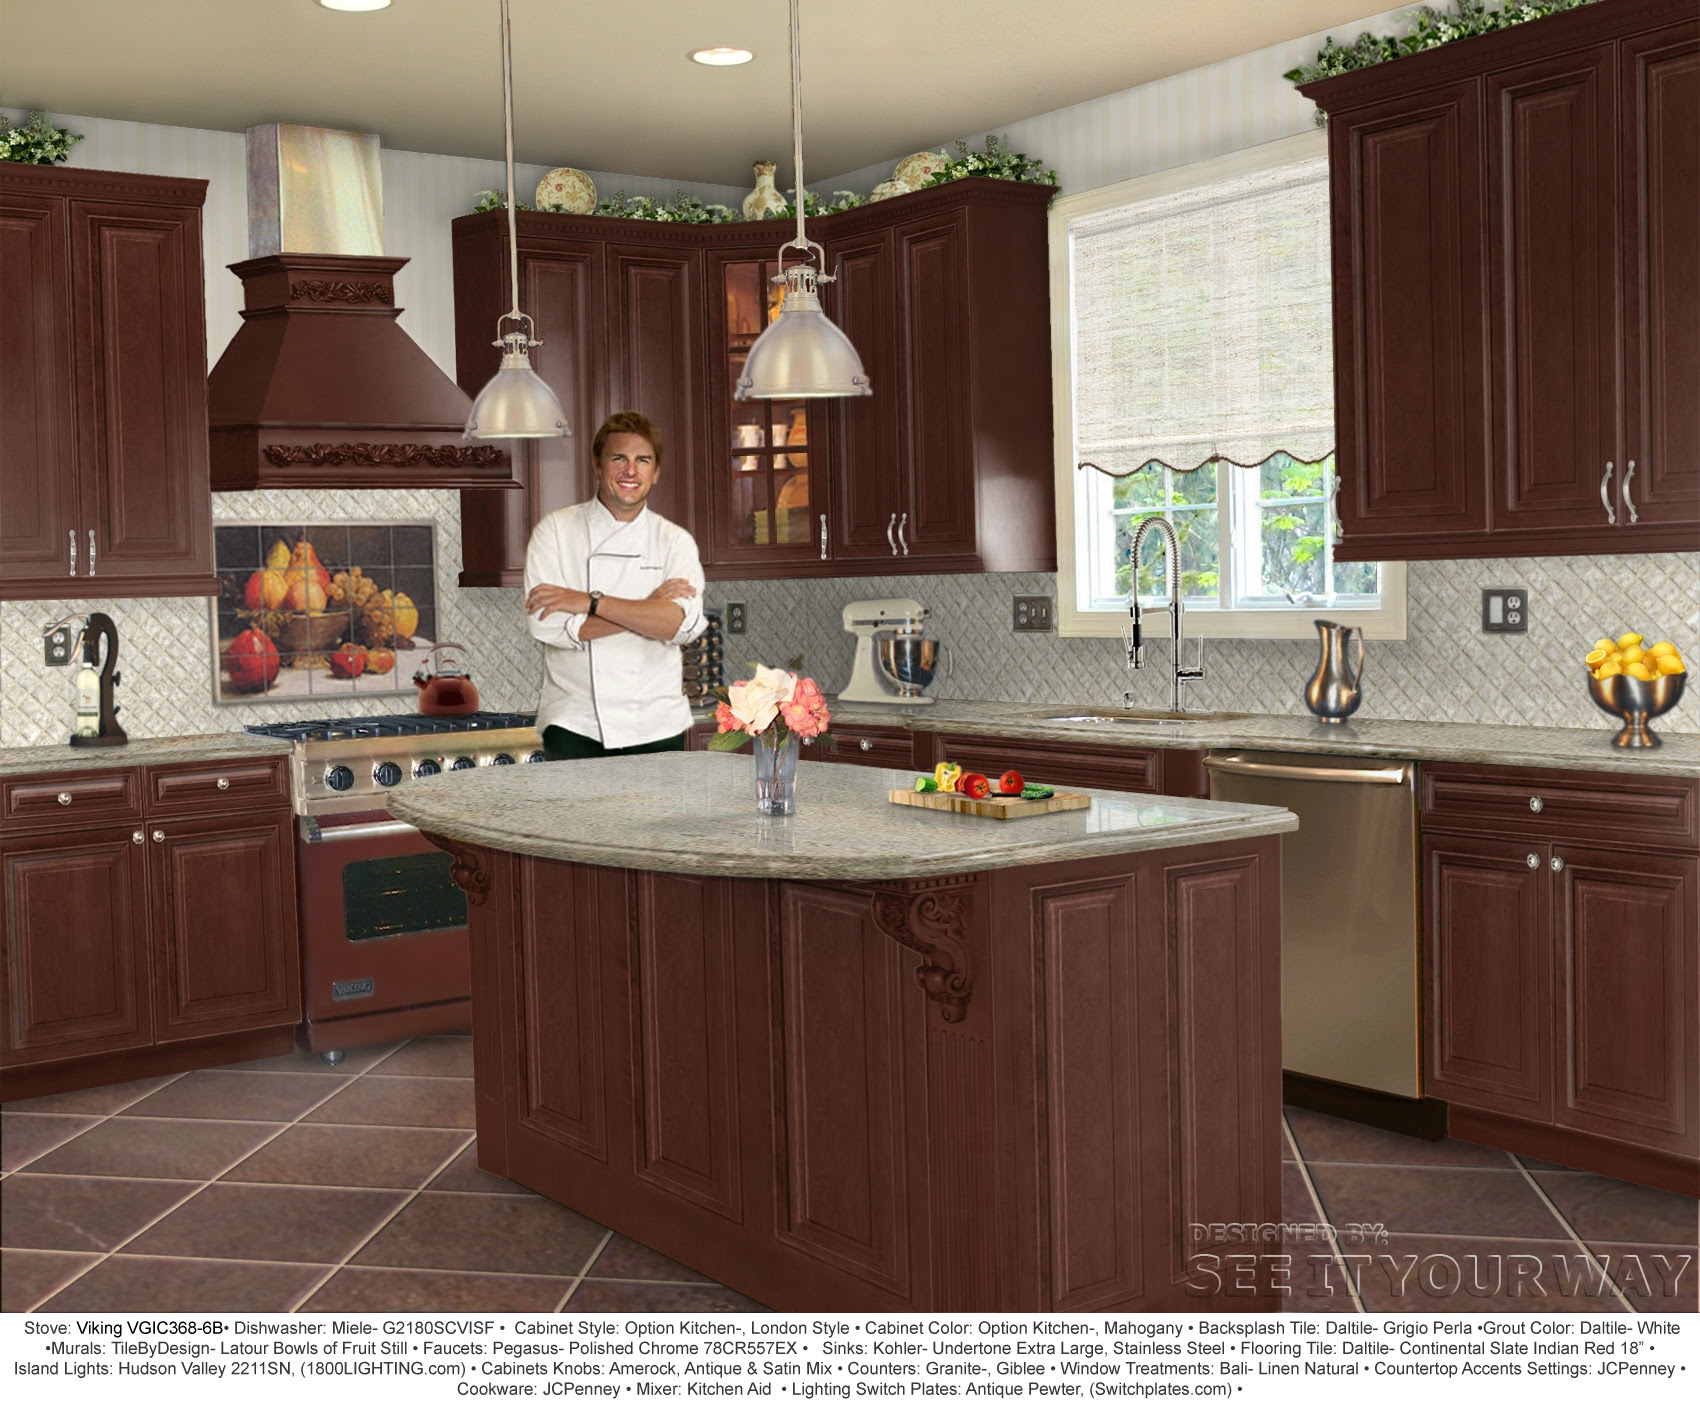 Sample pictures of kitchen cabinets - Interior Design ...